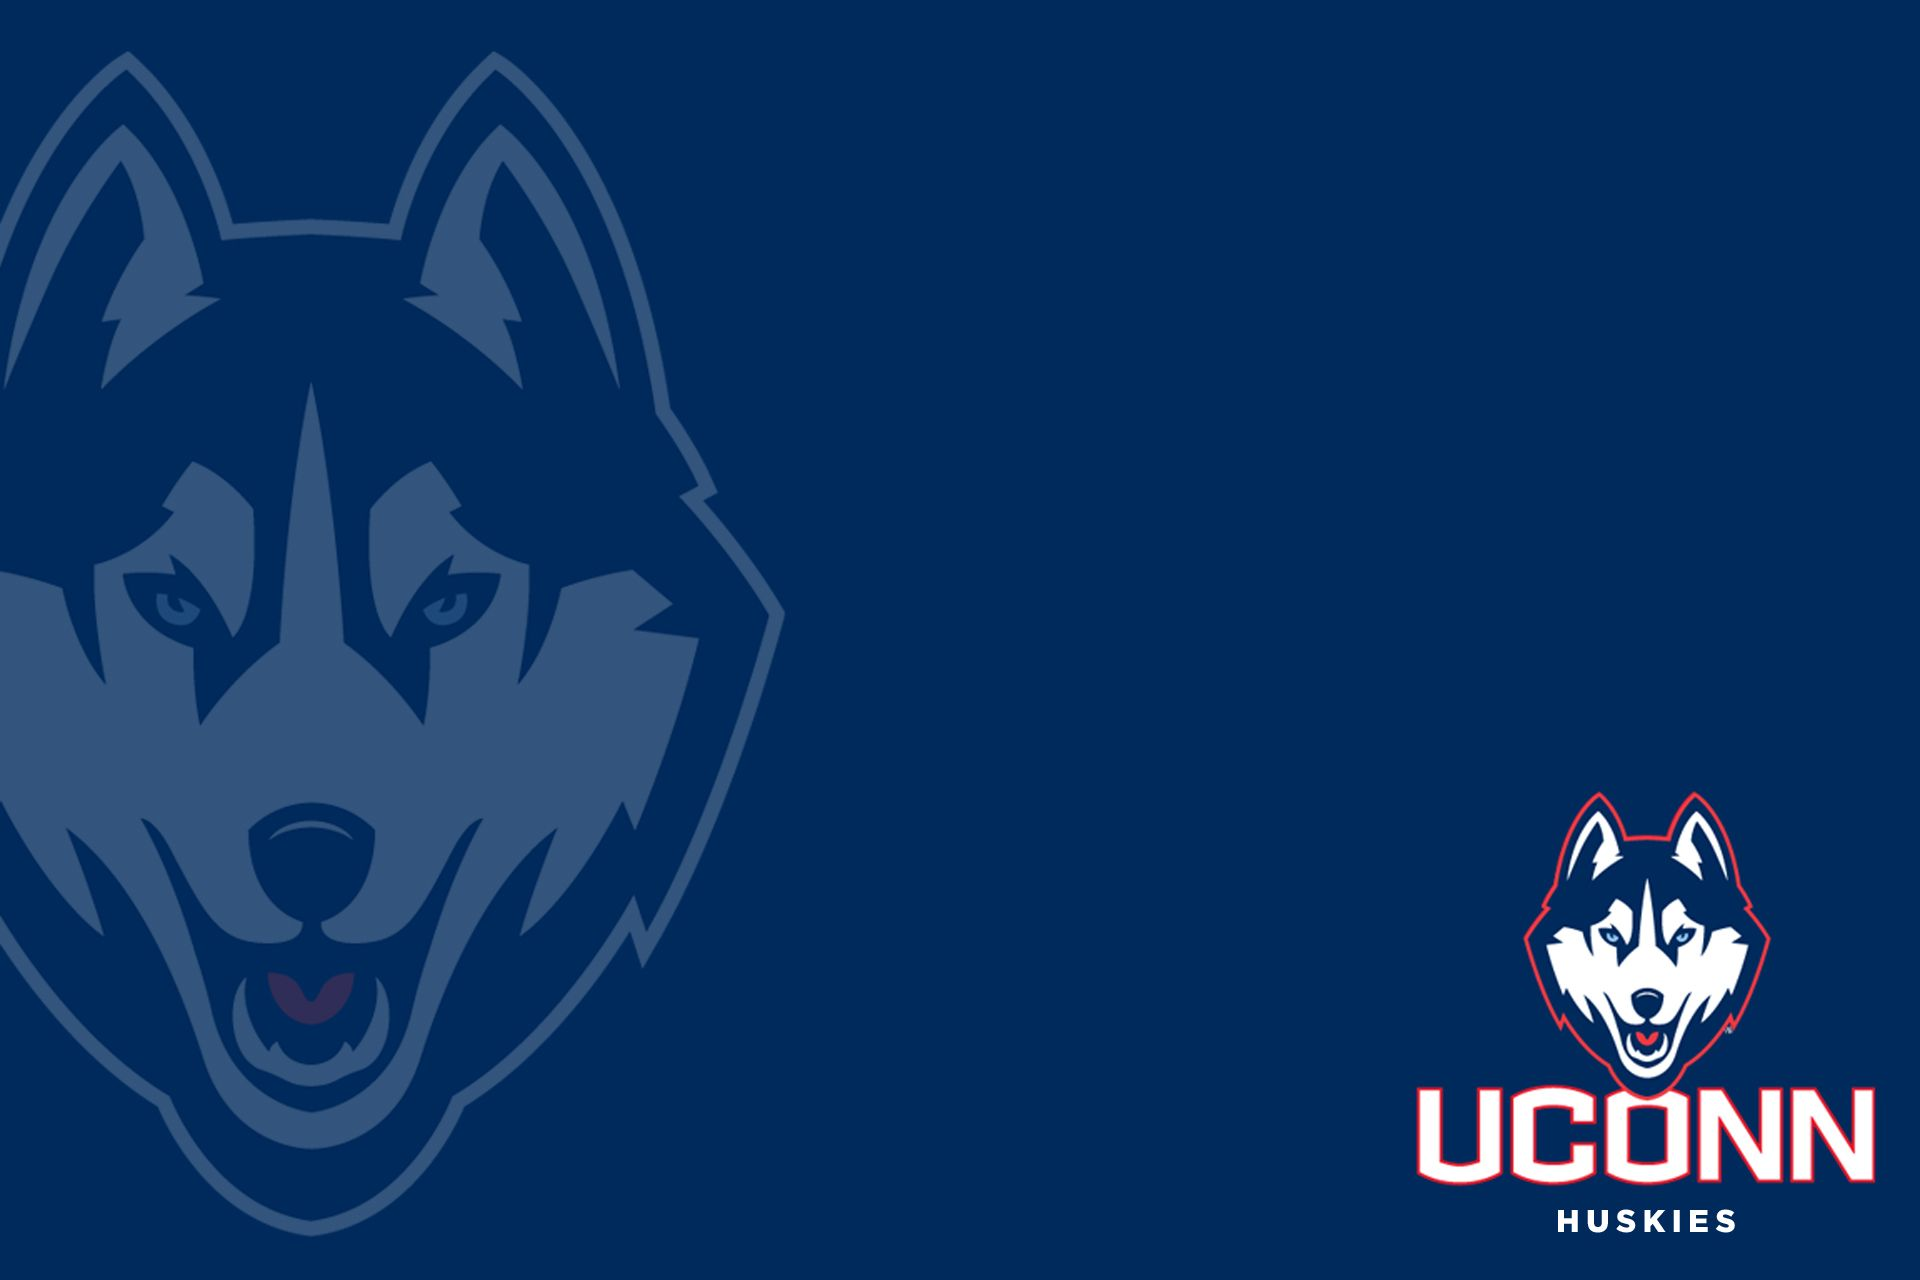 Uconn Iphone Wallpaper Uconn Wallpapers Group 56